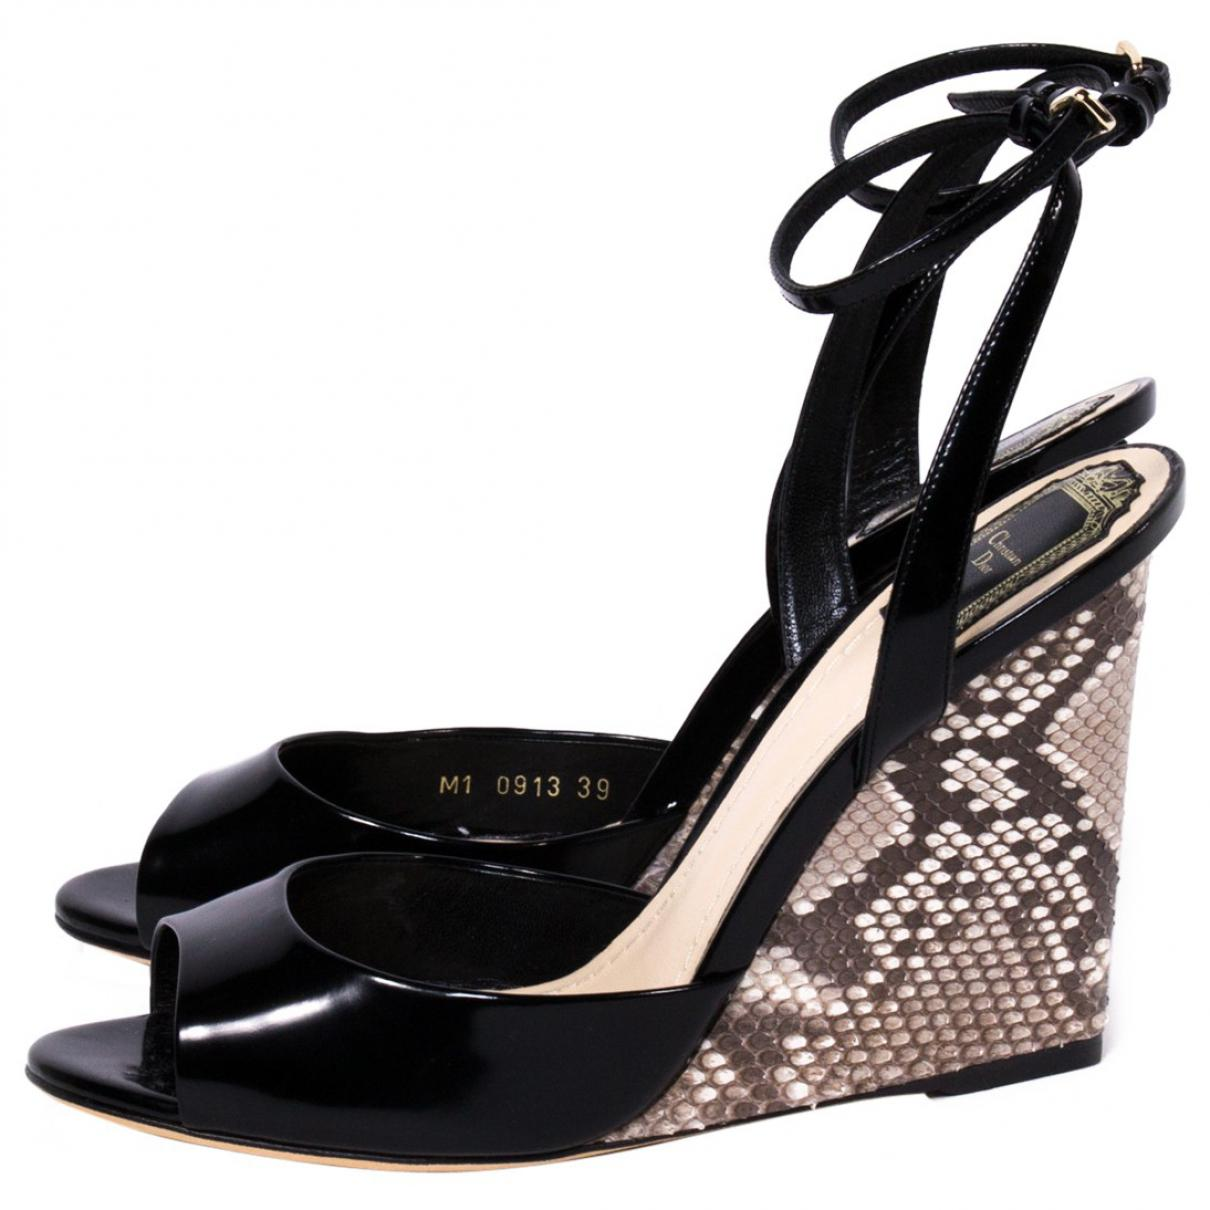 Pre-owned - Python heels Dior zDwbS7